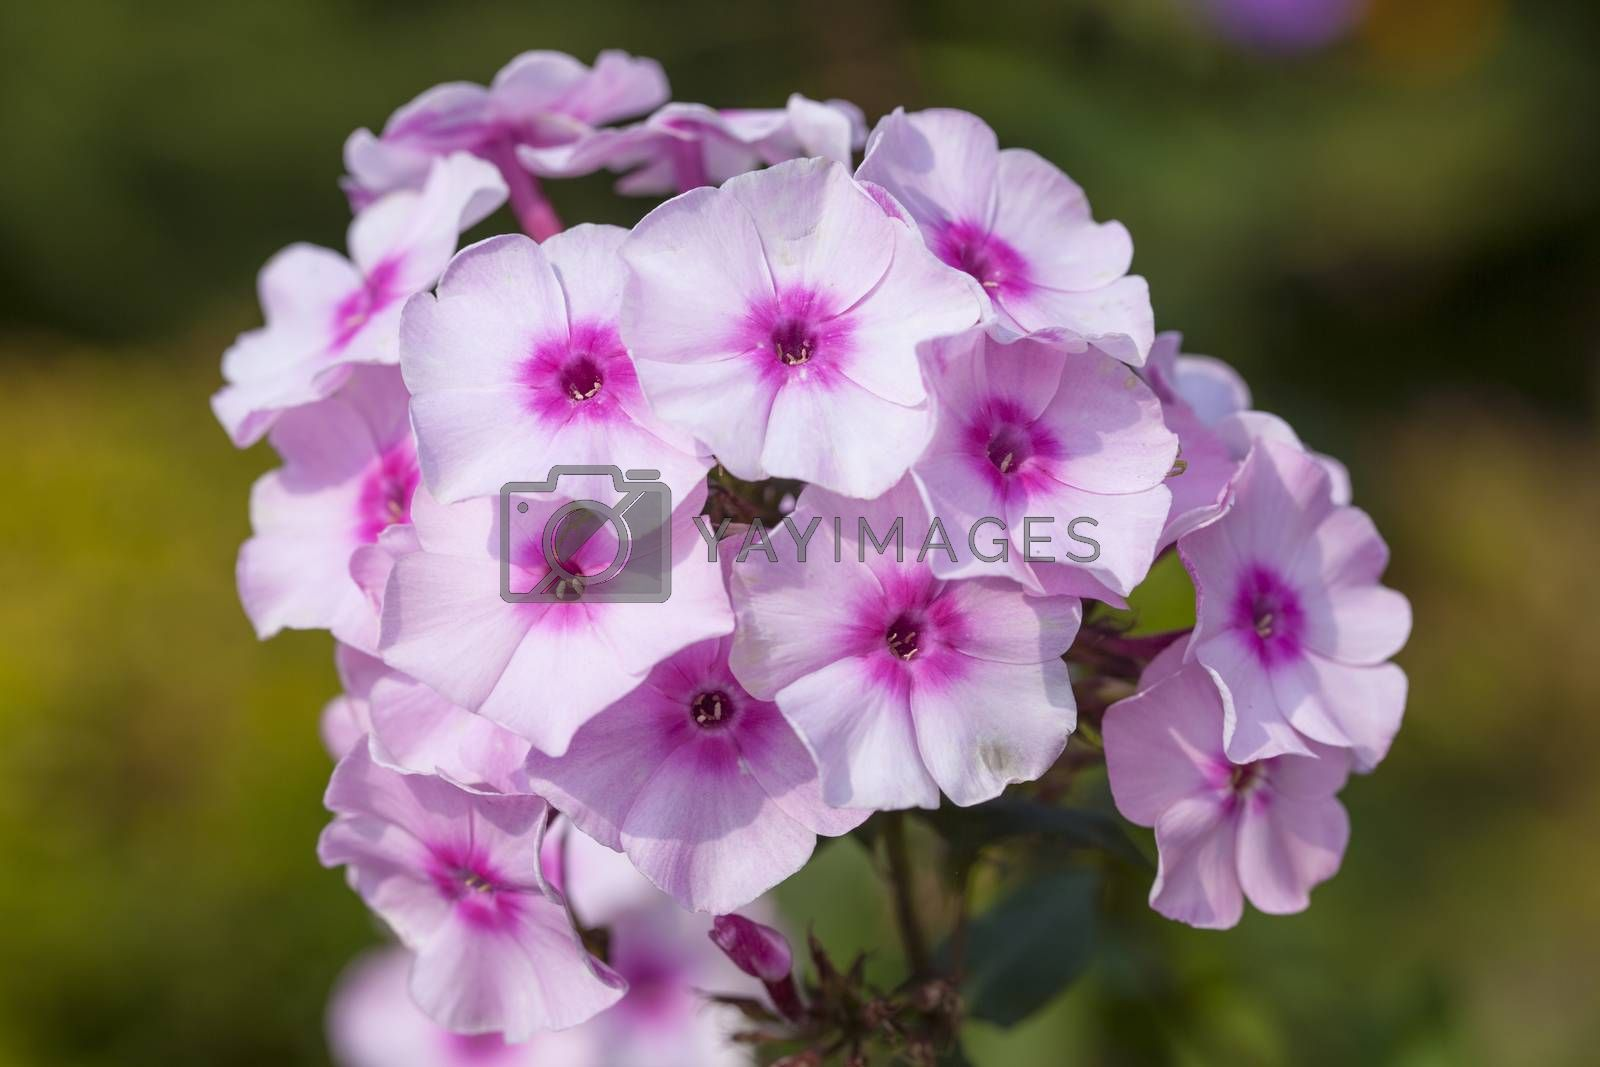 bouquet of purple flowers close up by maselkoo99